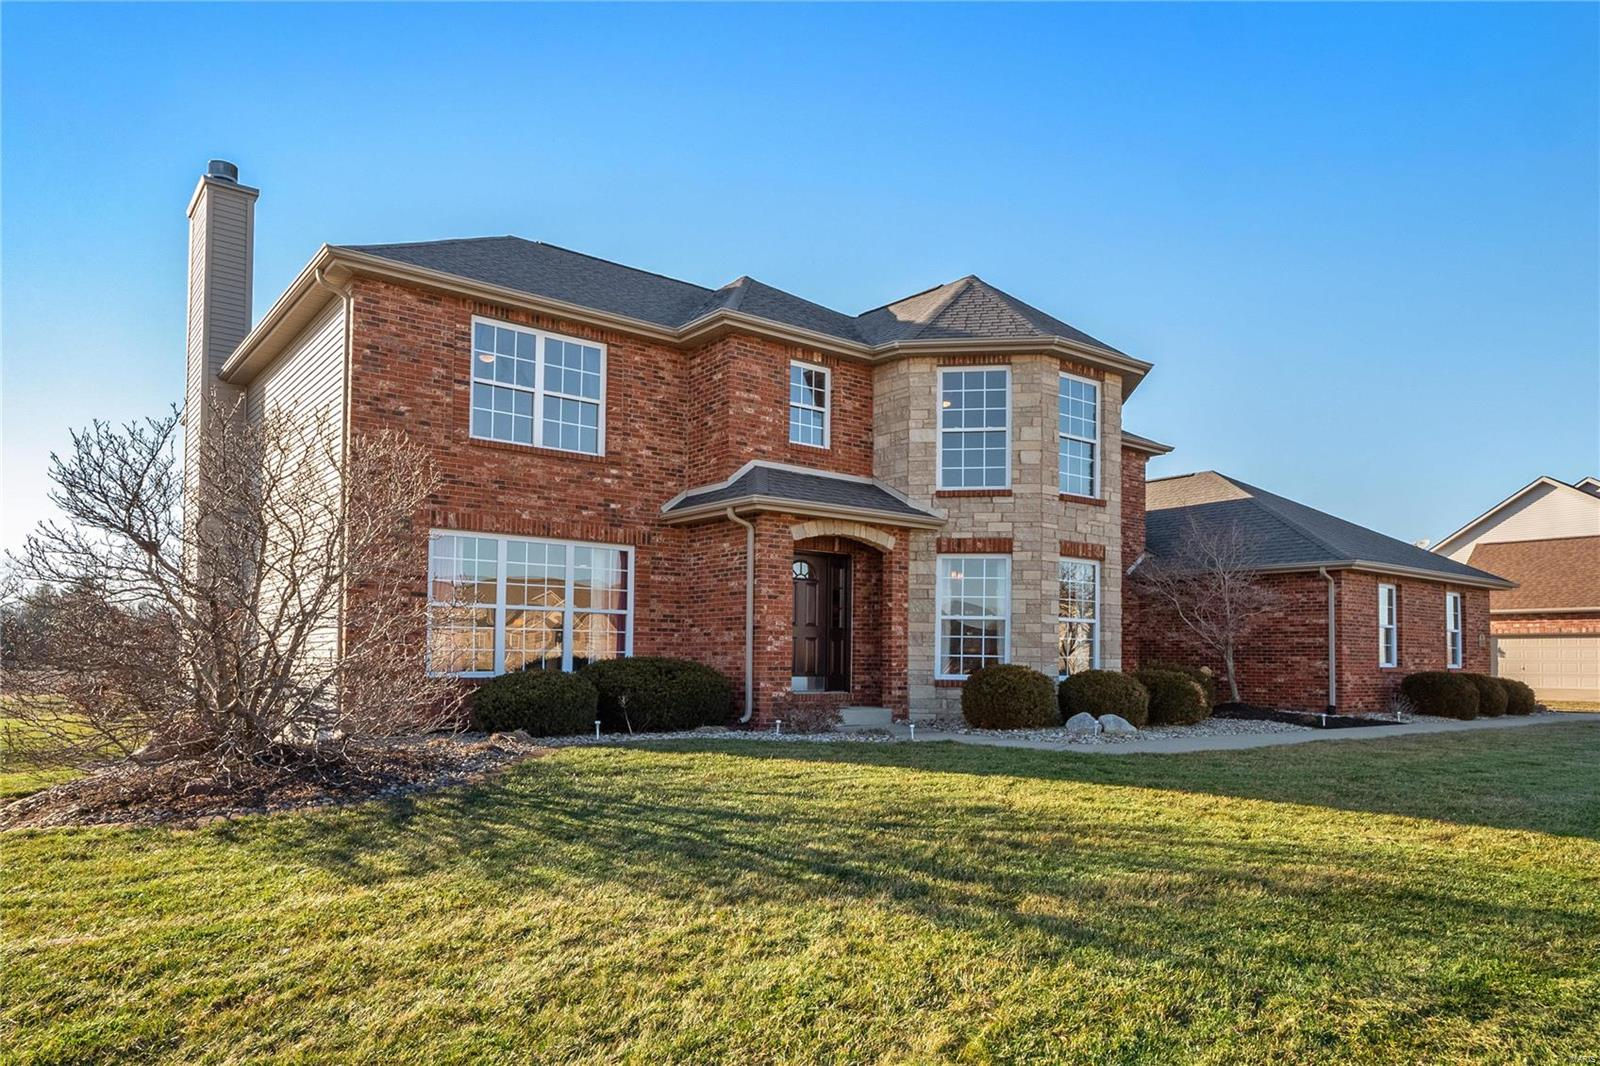 3403 Whistling Cove Property Photo - Swansea, IL real estate listing